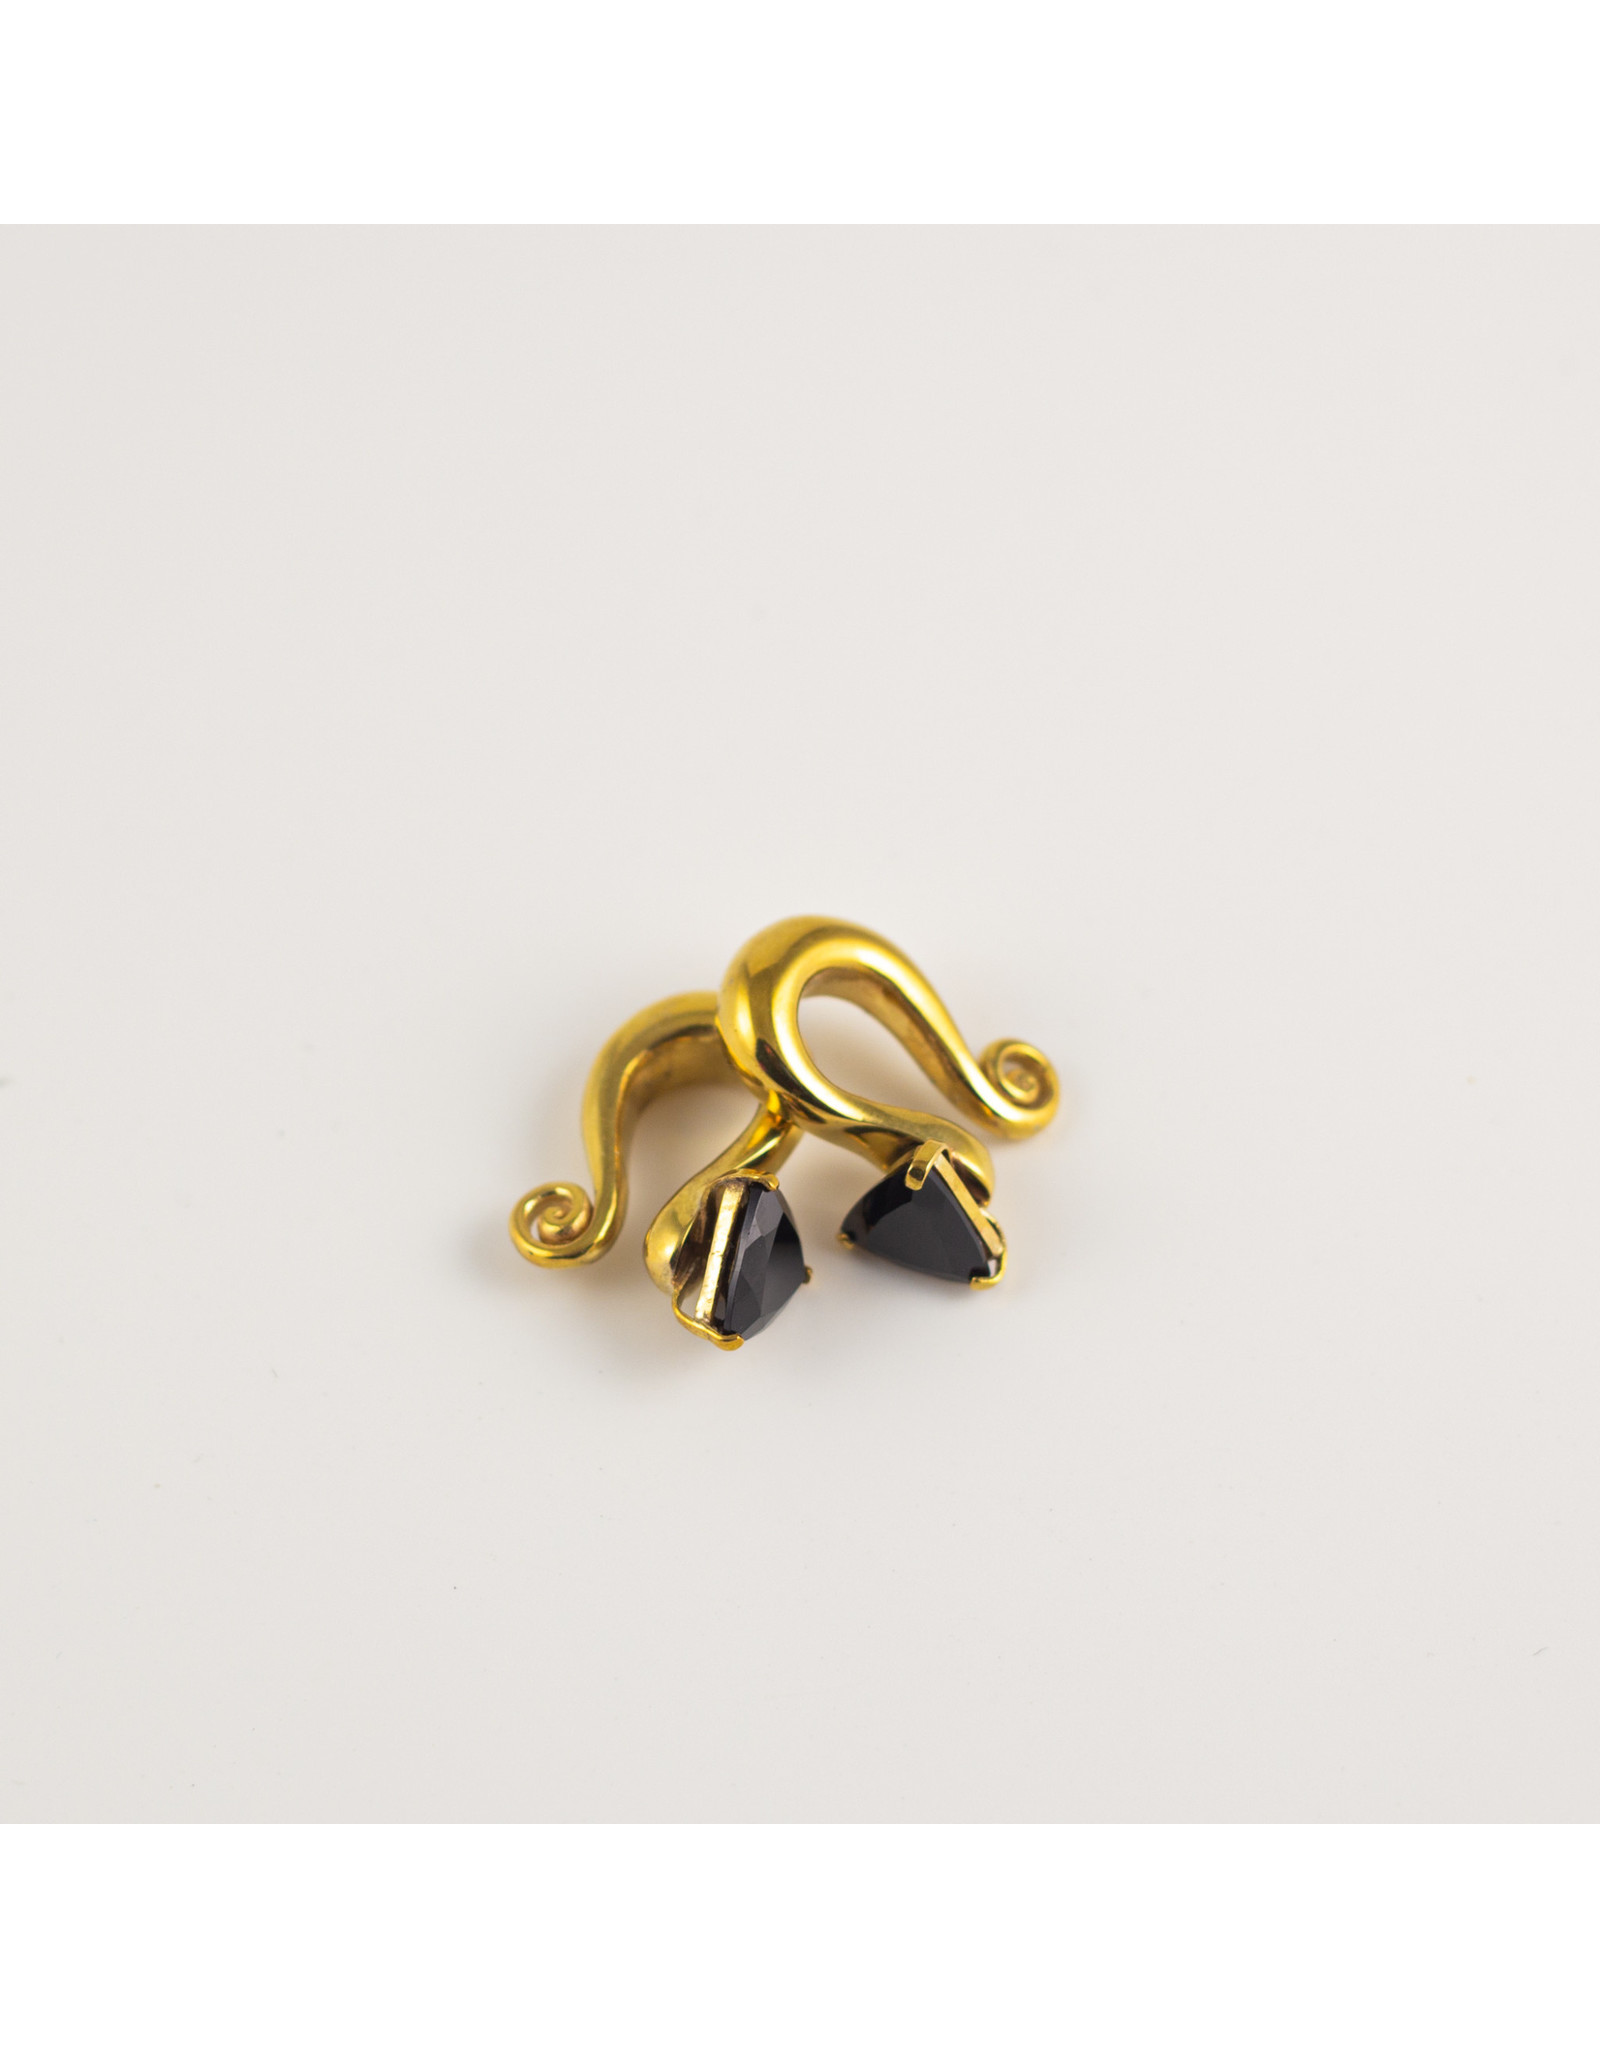 Diablo Organics Diablo Organics brass curled weights with faceted onyx